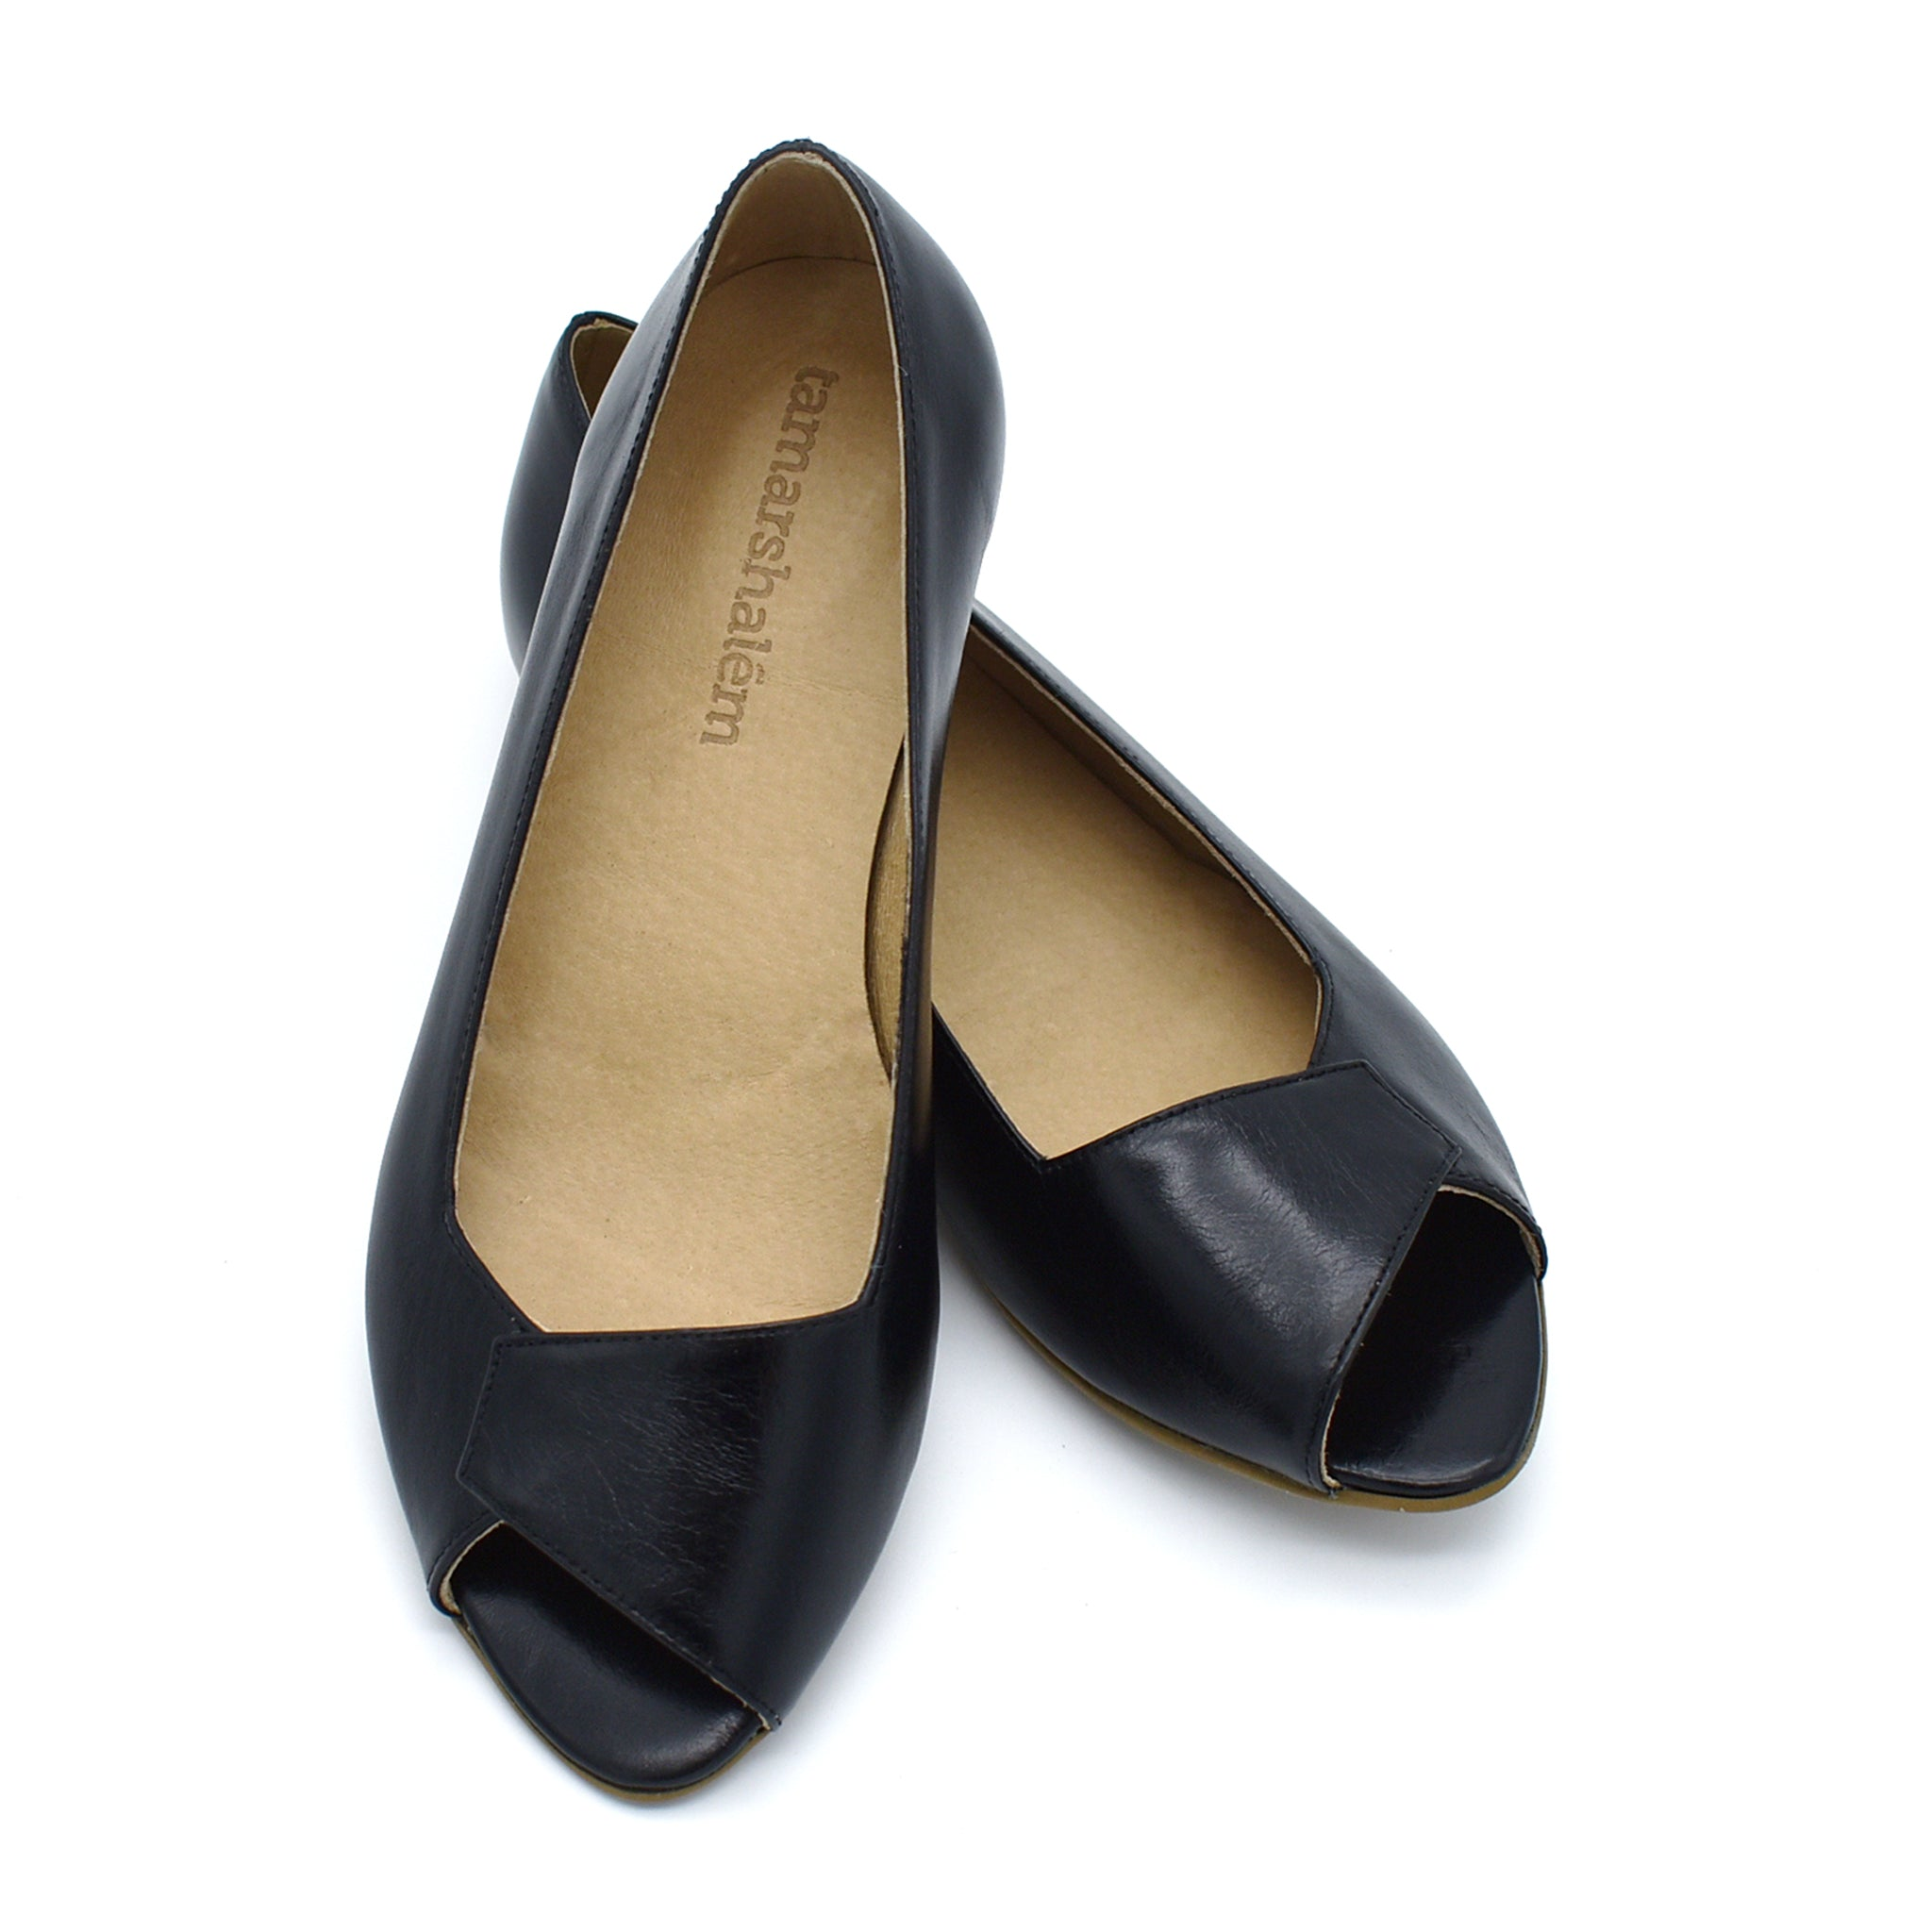 Mia peep toe flats in black